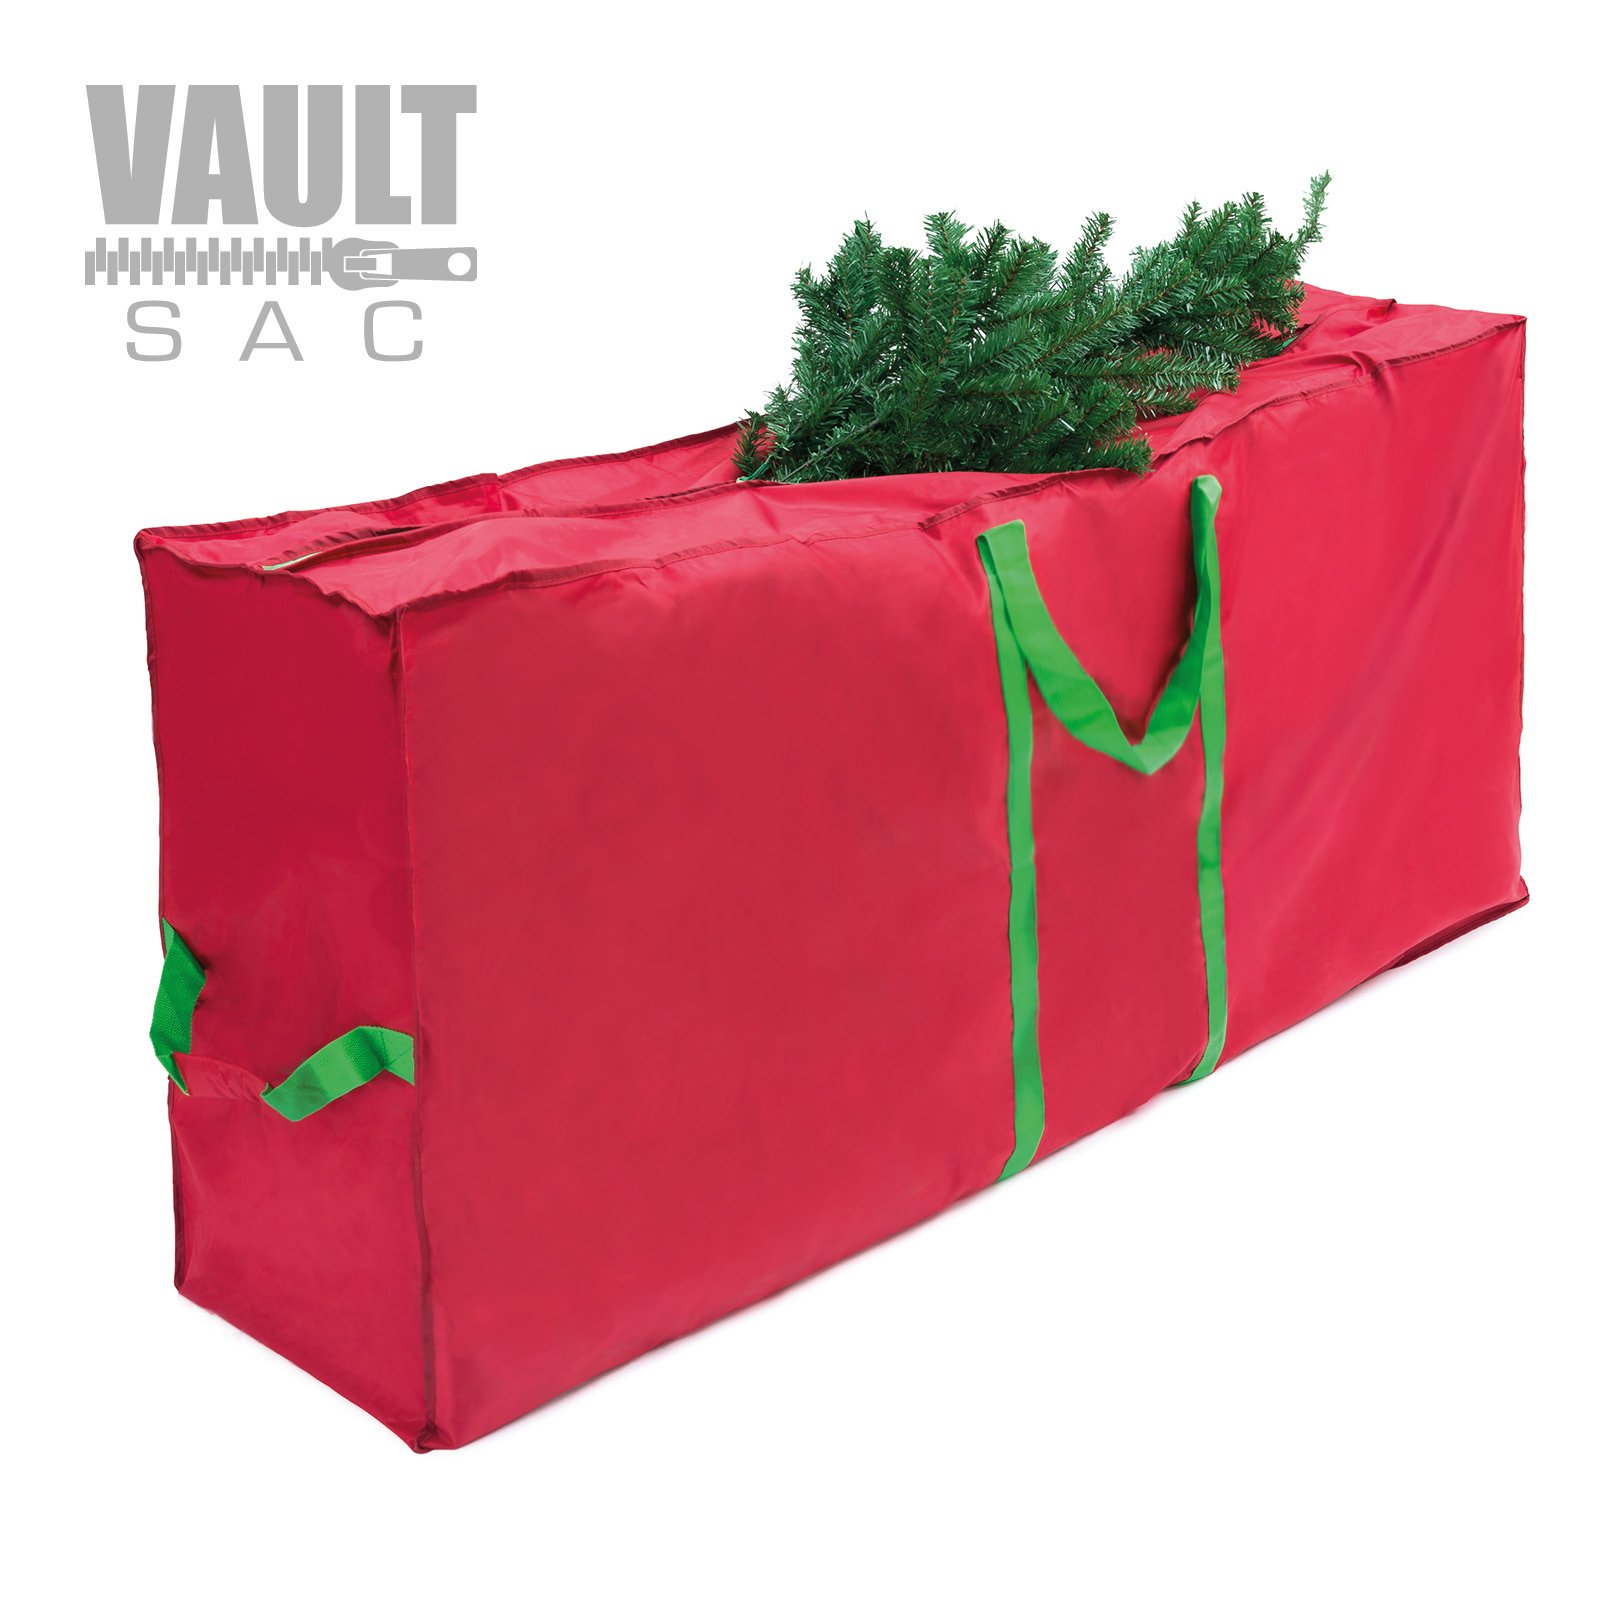 Christmas Tree Storage Bag | Large For Artificial Trees Up To 7 Feet Tall |  Great Storage For Holiday Accessories And Decorations | Durable Design